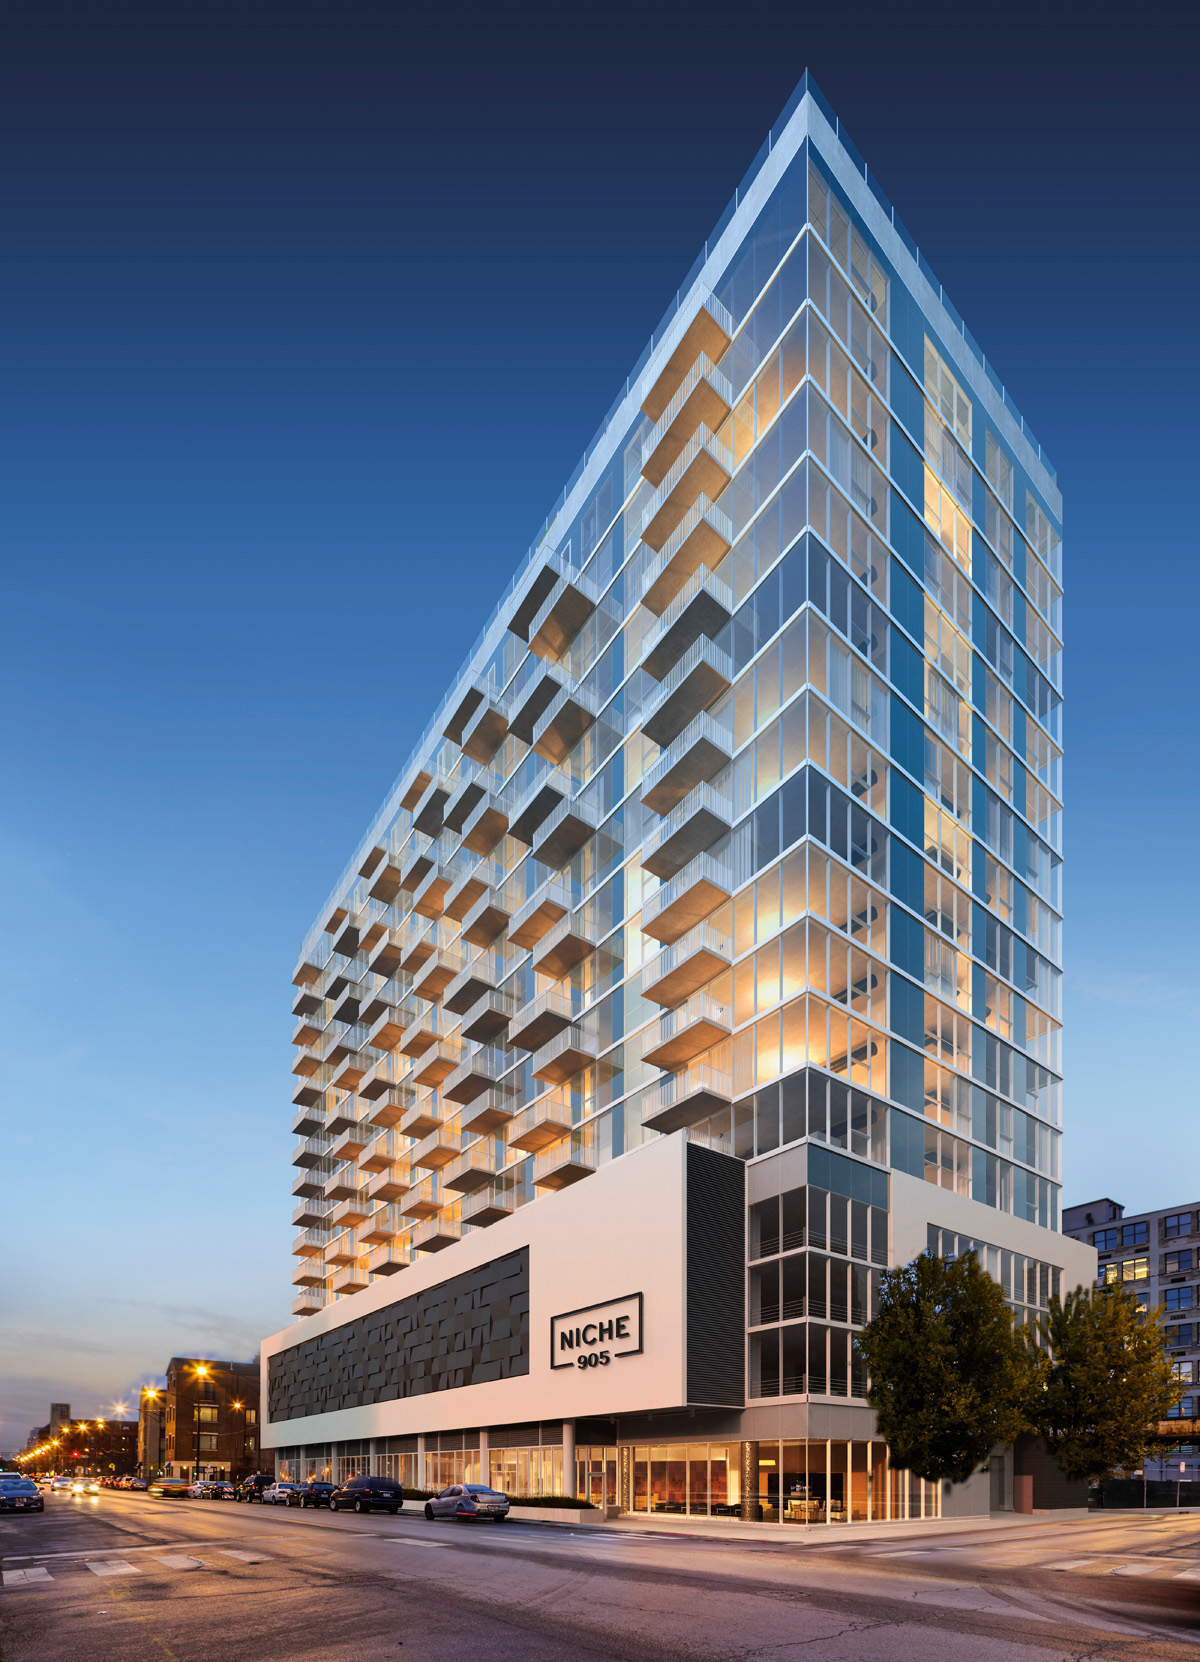 Luxury apartment tower niche 905 breaks ground in downtown for Hotels in chicago under 100